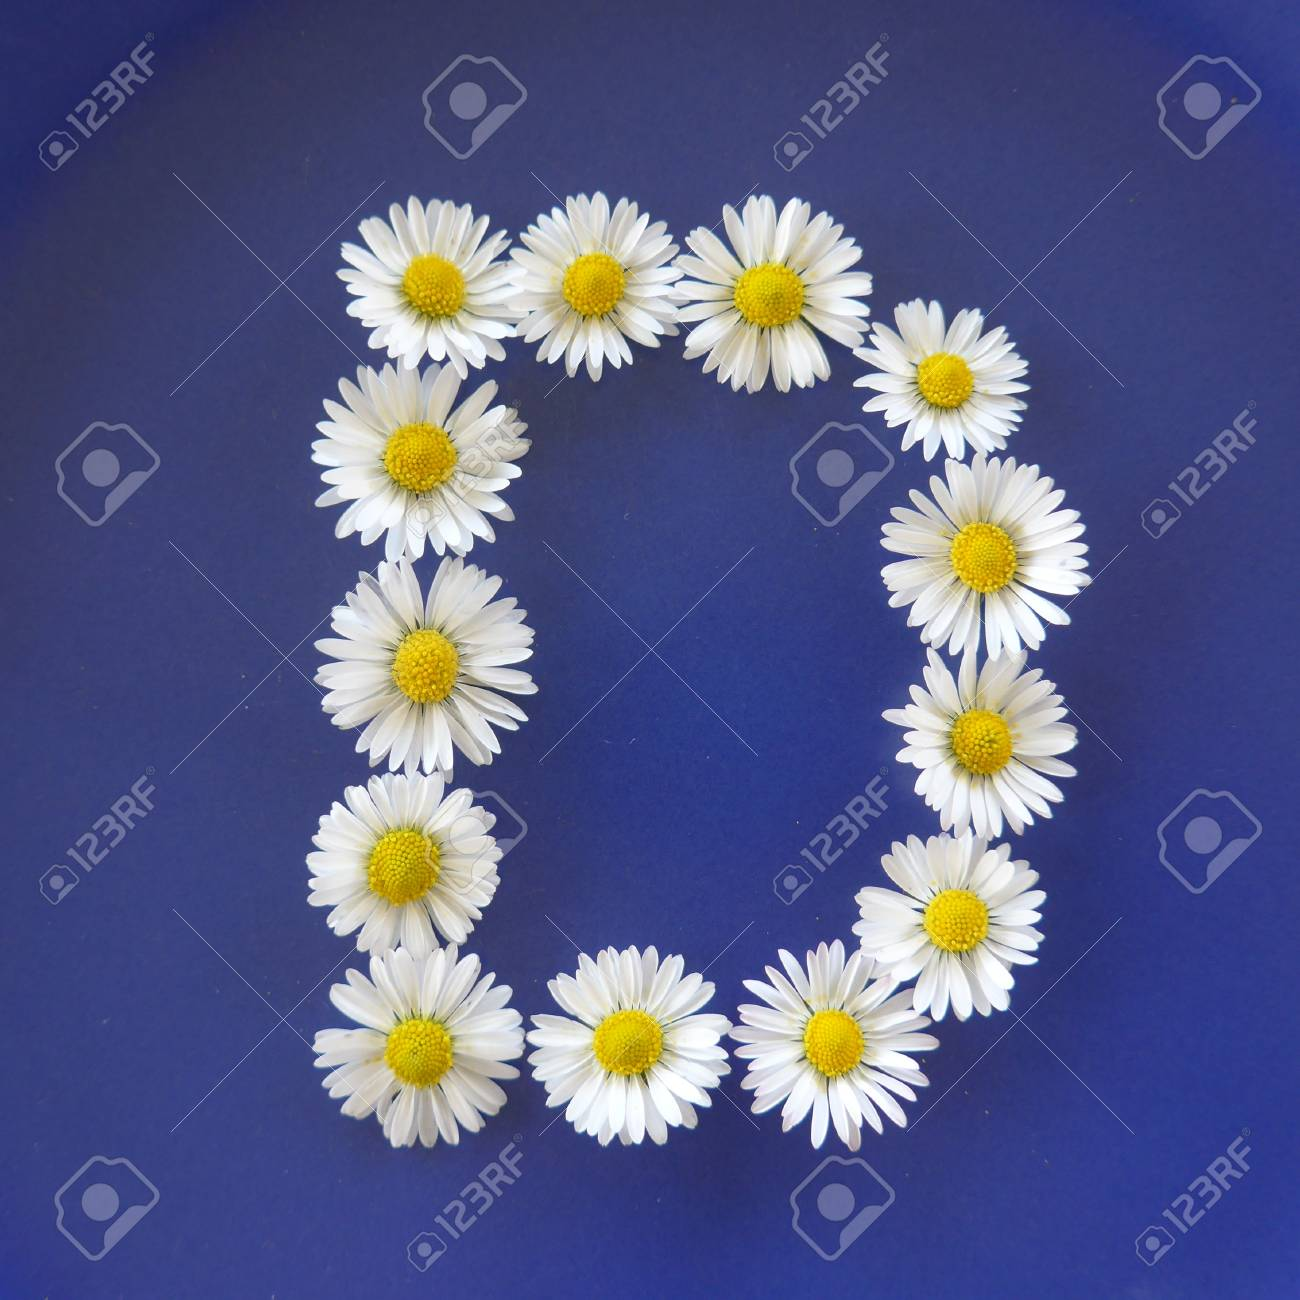 Letter d from white flowers daisies bellis perennis close up letter d from white flowers daisies bellis perennis close up on izmirmasajfo